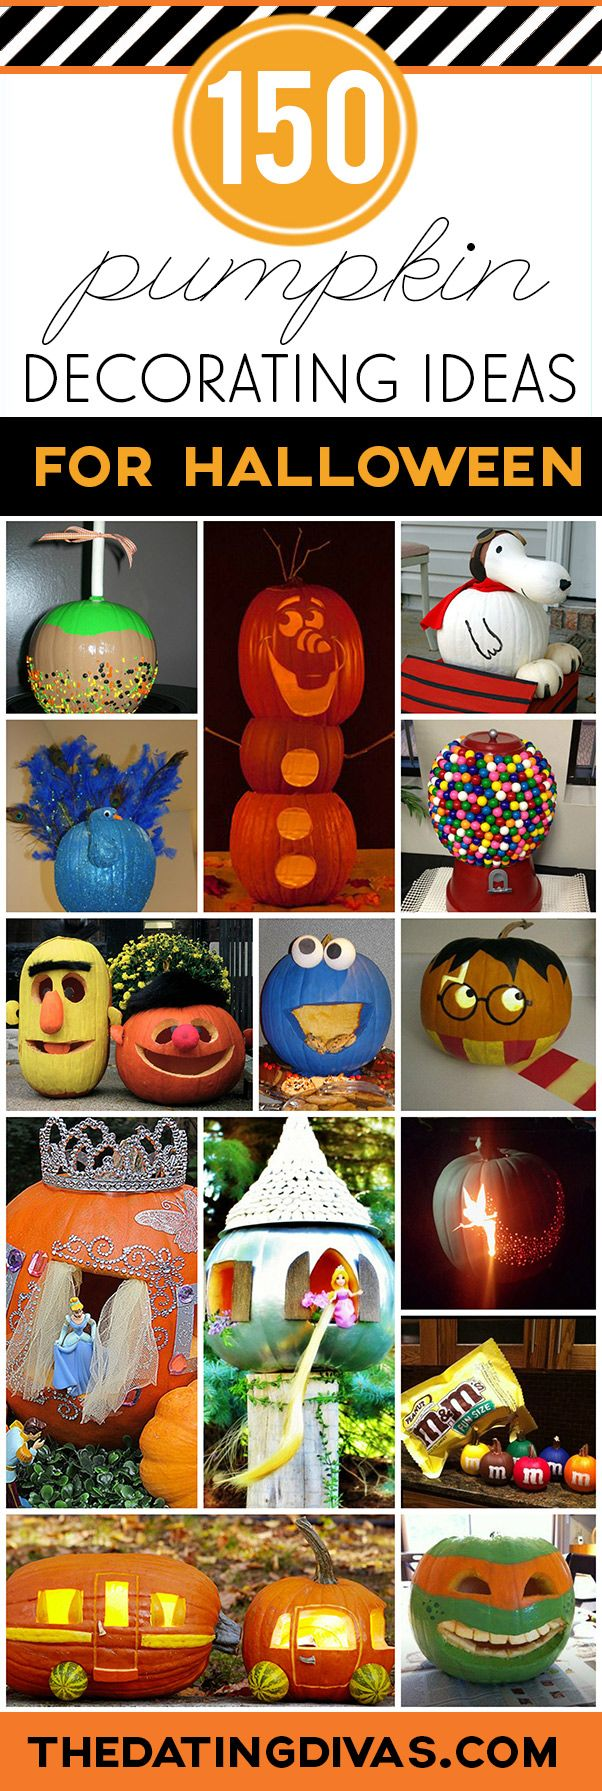 Best 25+ Creative pumpkin carving ideas ideas on Pinterest ...